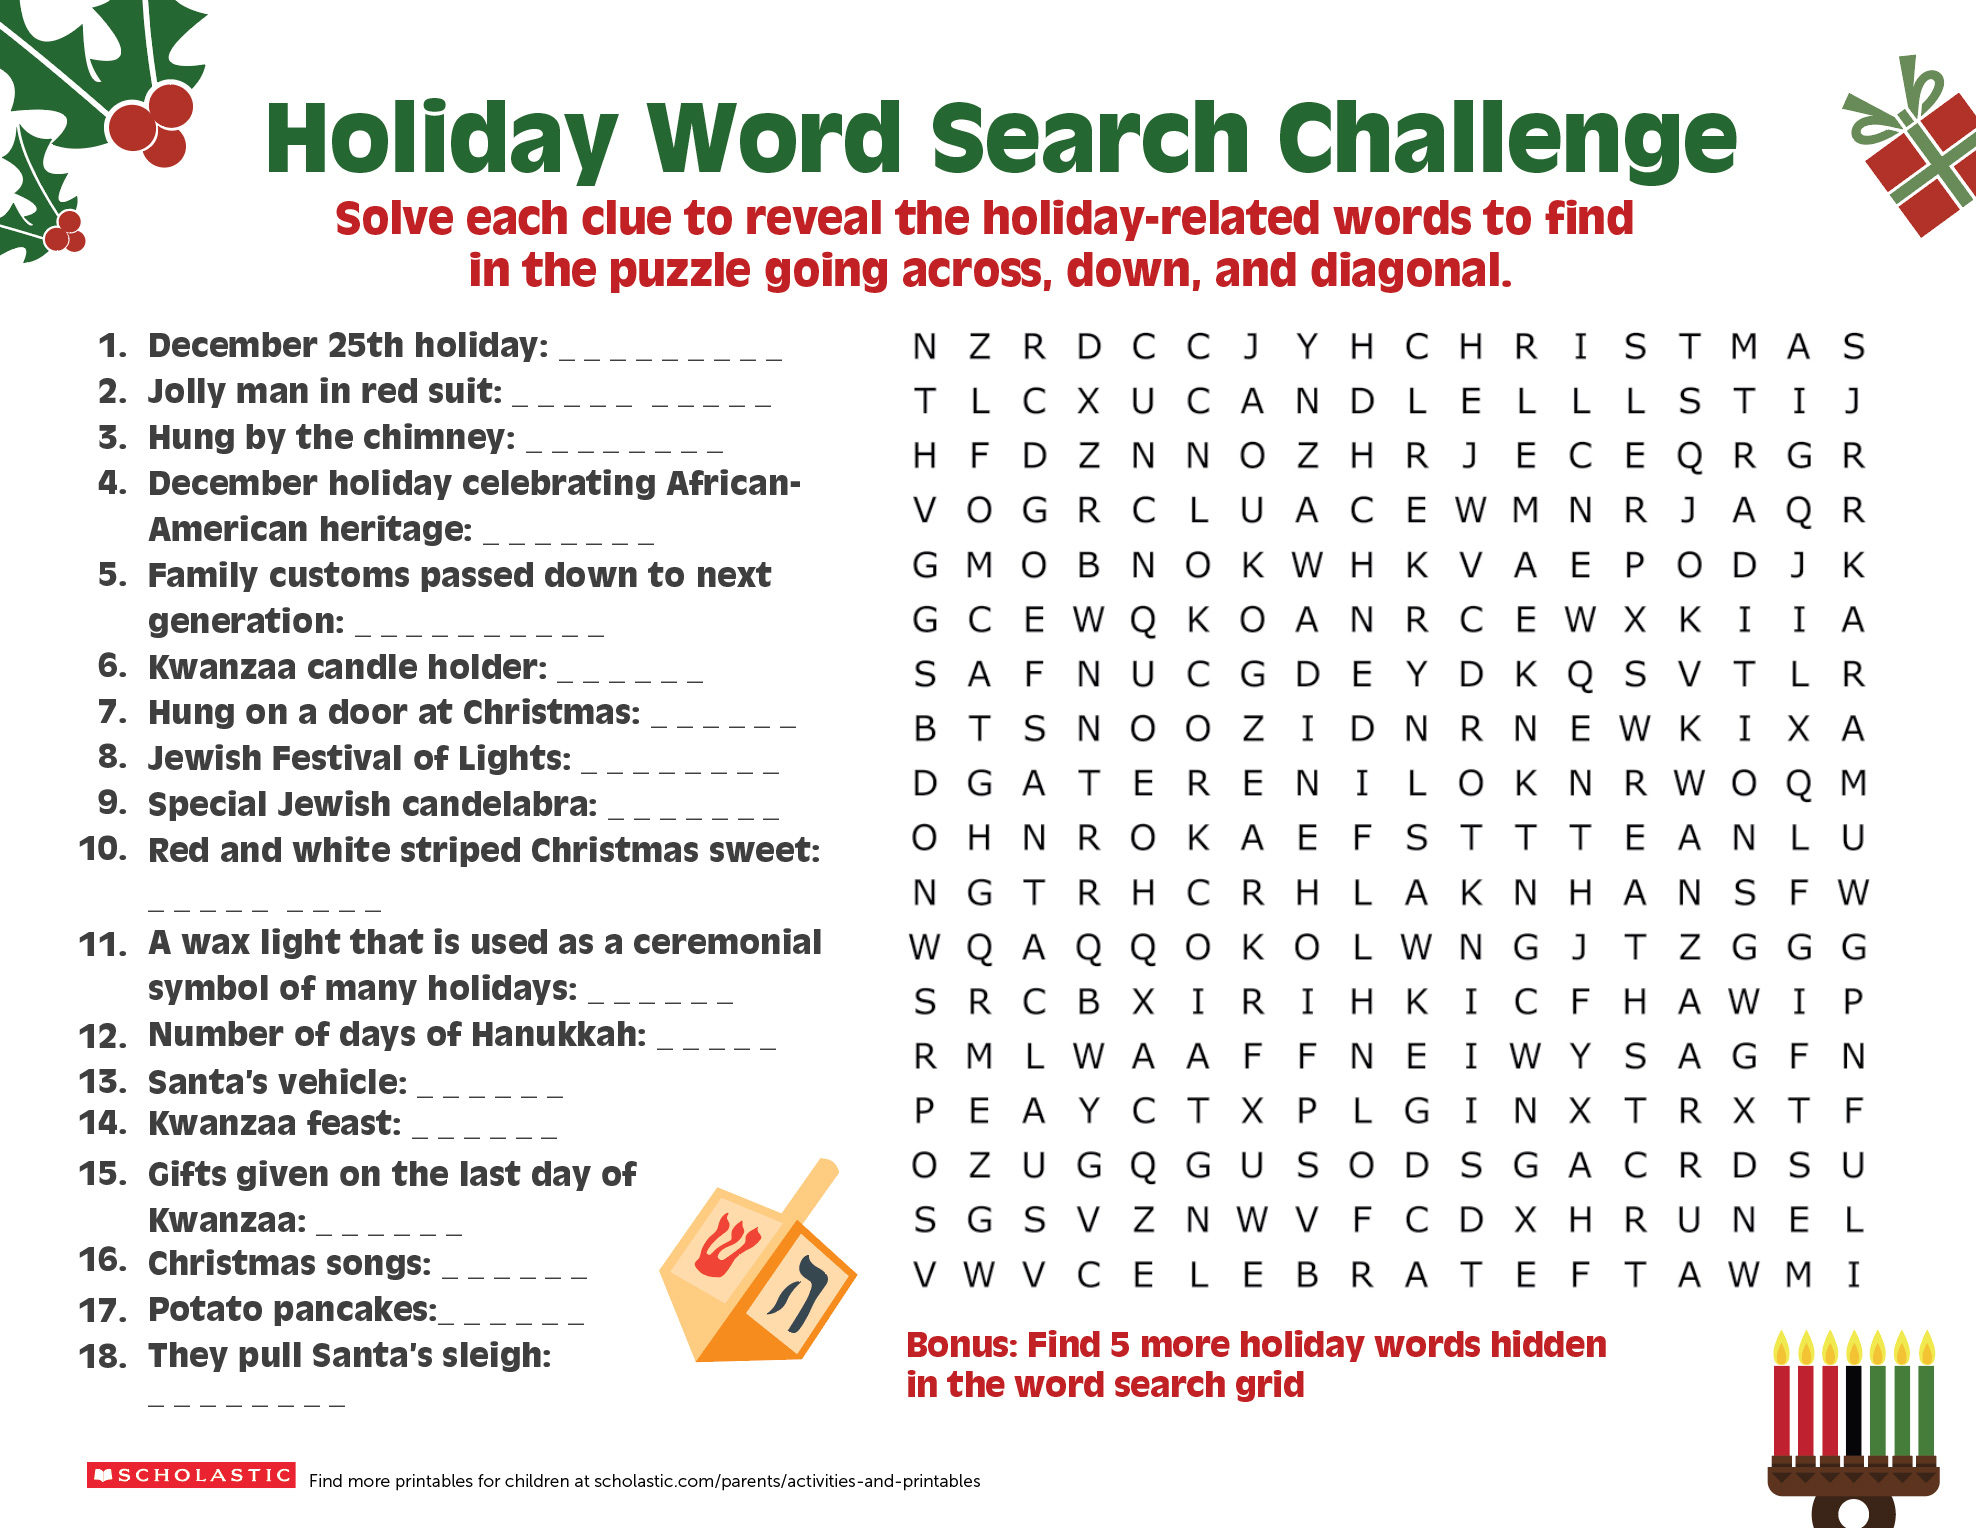 Share A Holiday Word Search Puzzle With Your Older Child